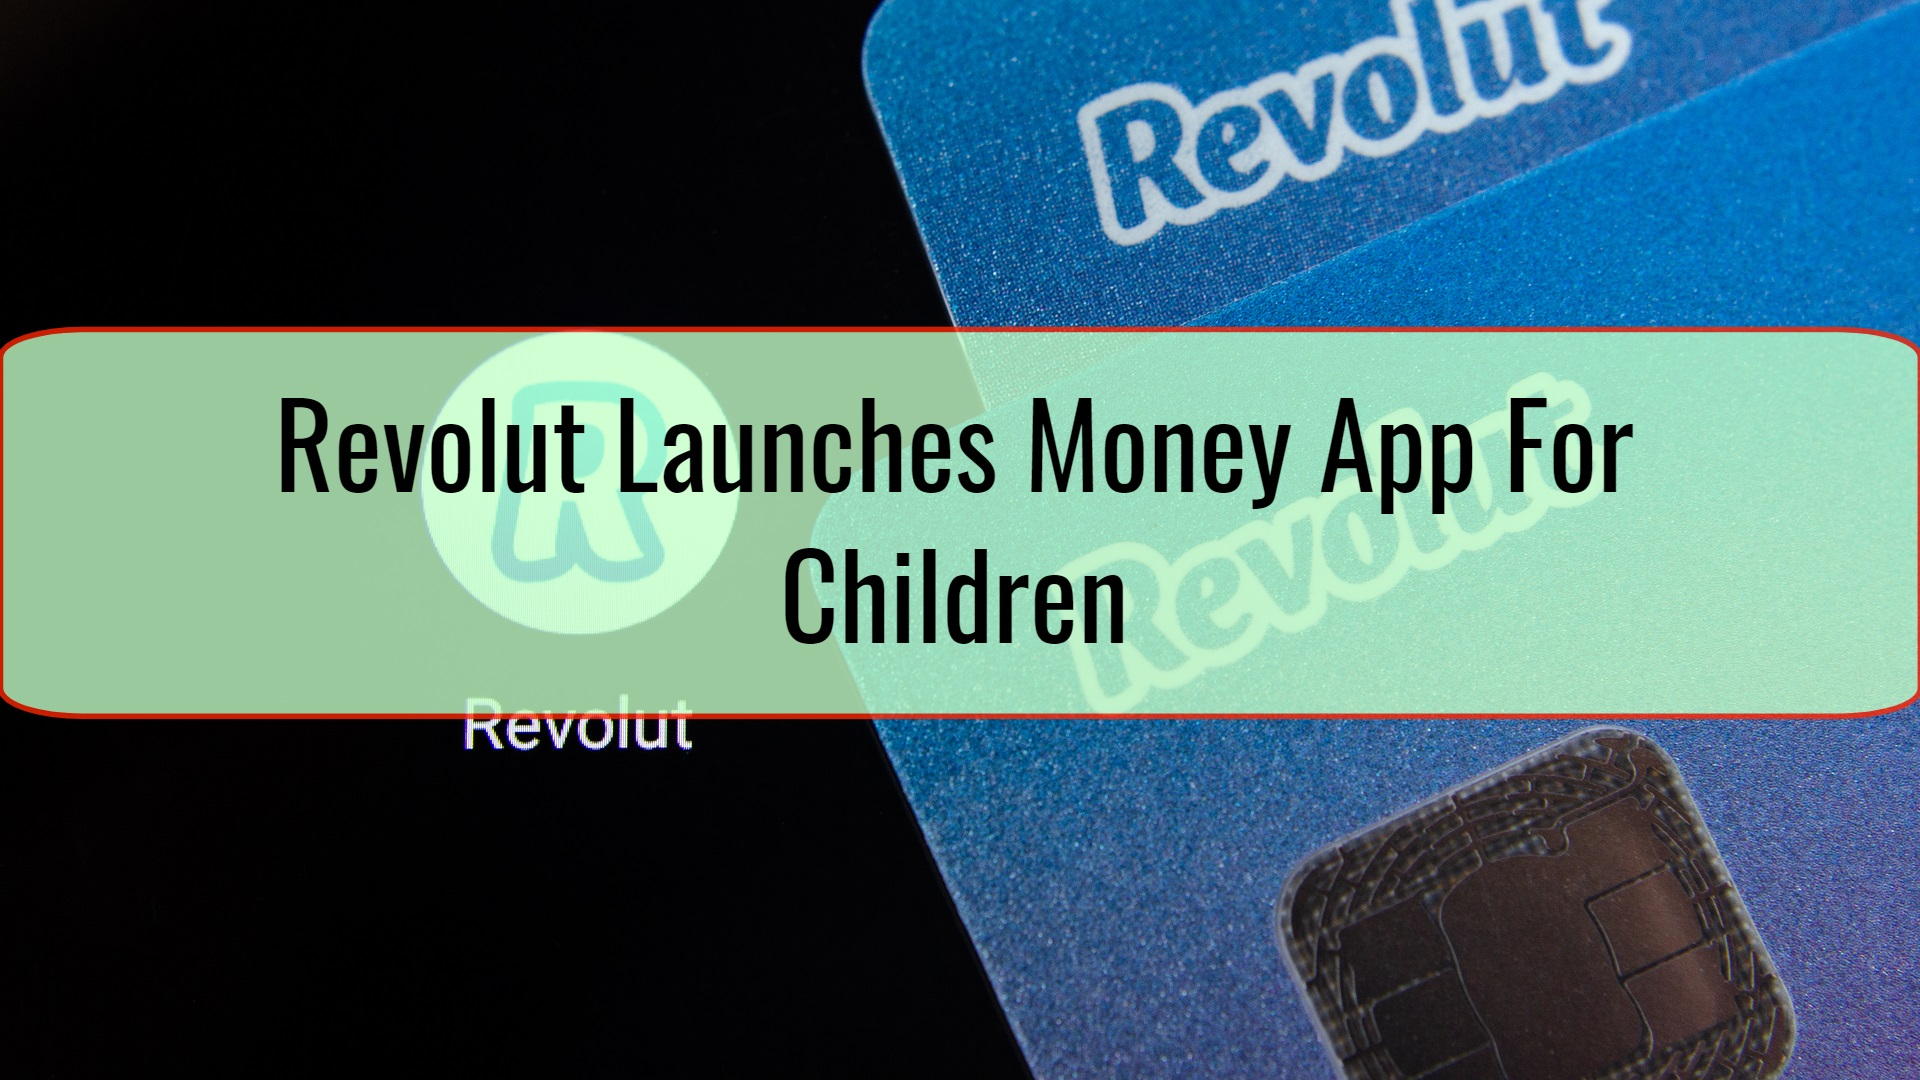 Revolut Launches Money App For Children